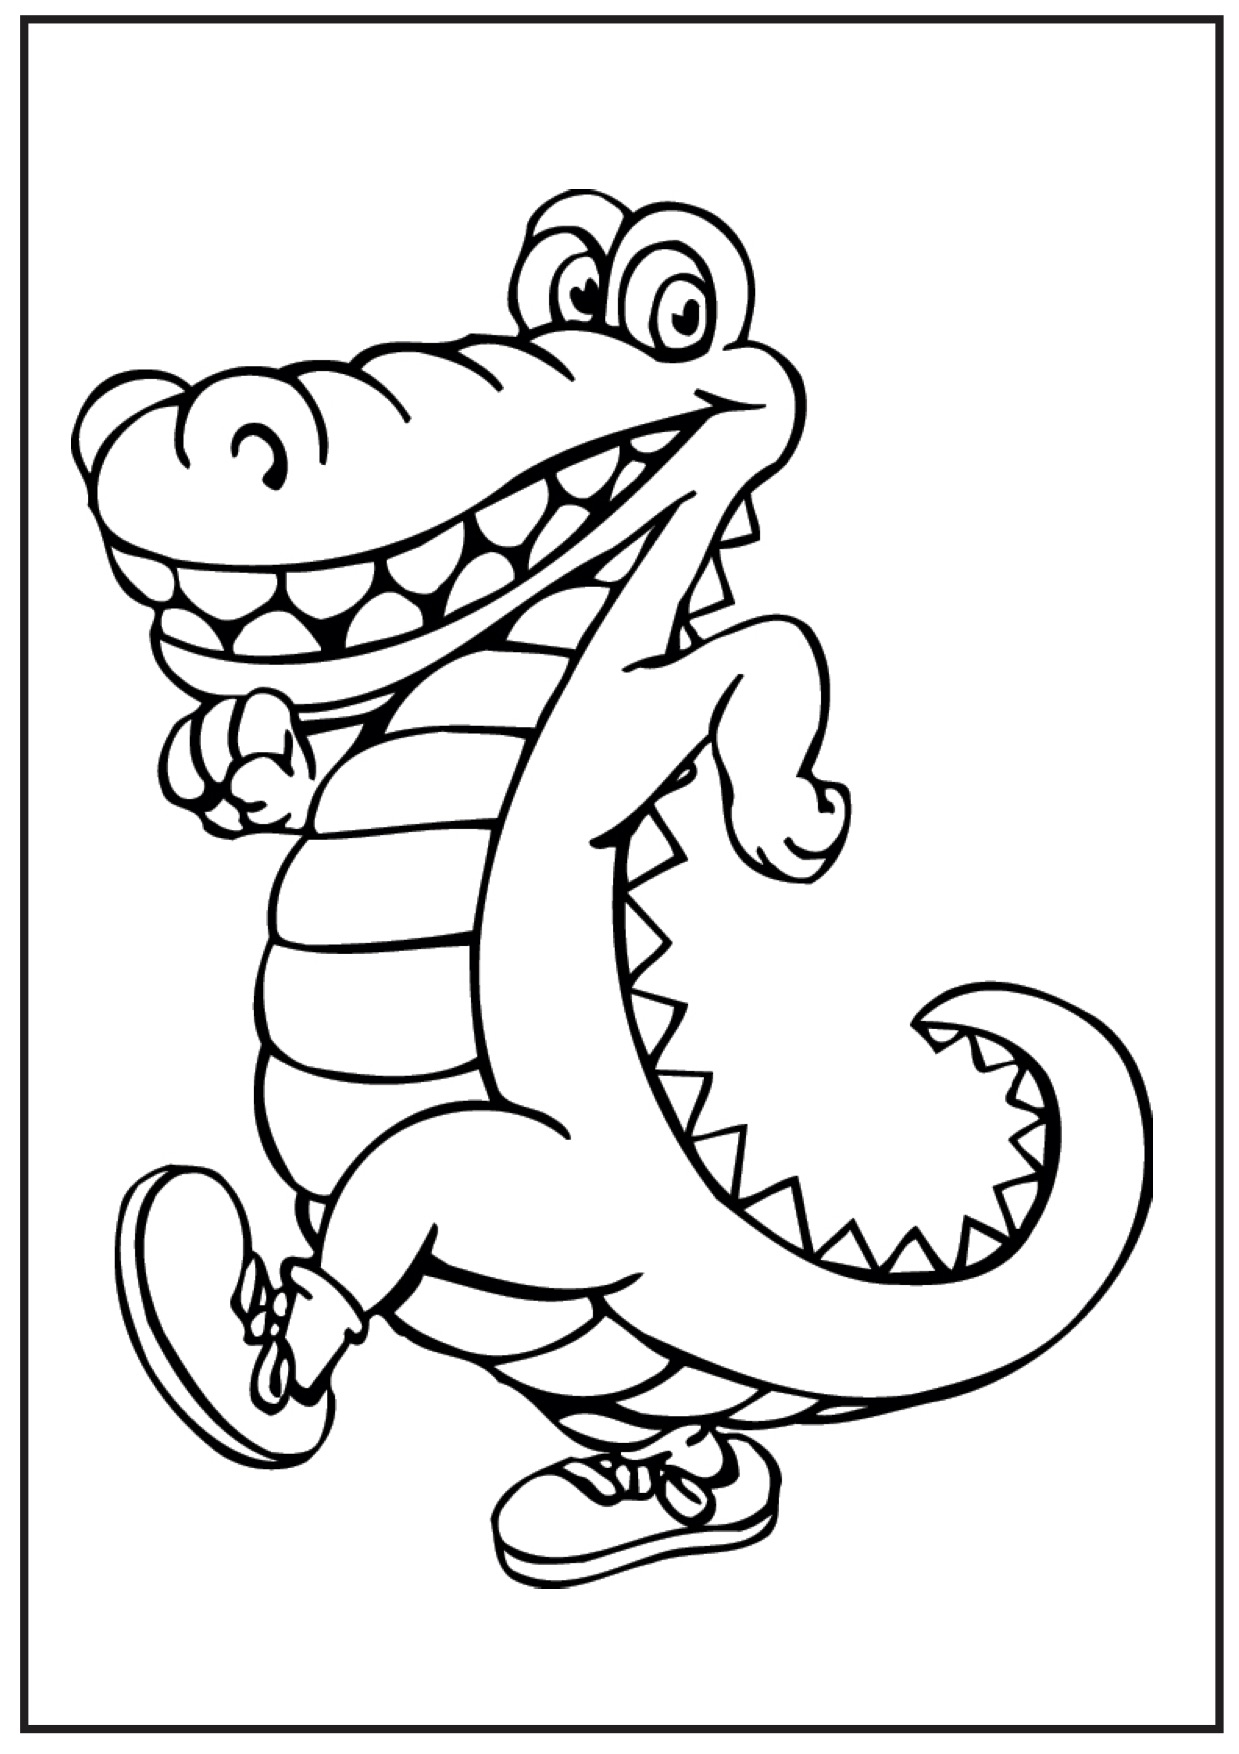 crocodile pictures to color get this free picture of alligator coloring pages prmlr pictures color to crocodile